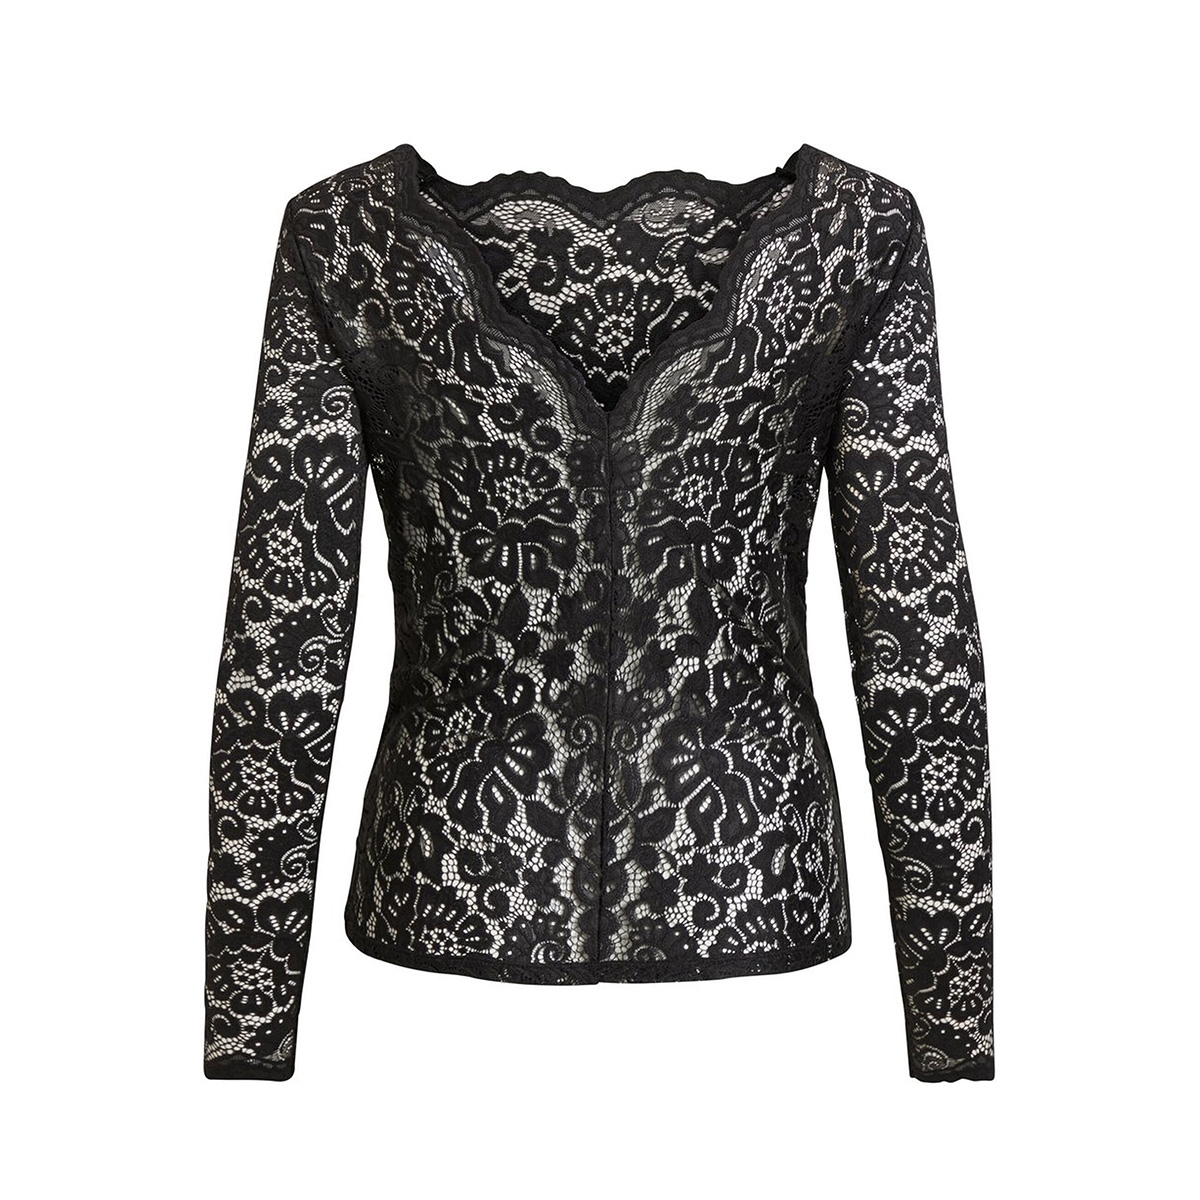 viellis l/s top/tb 14054868 vila blouse black